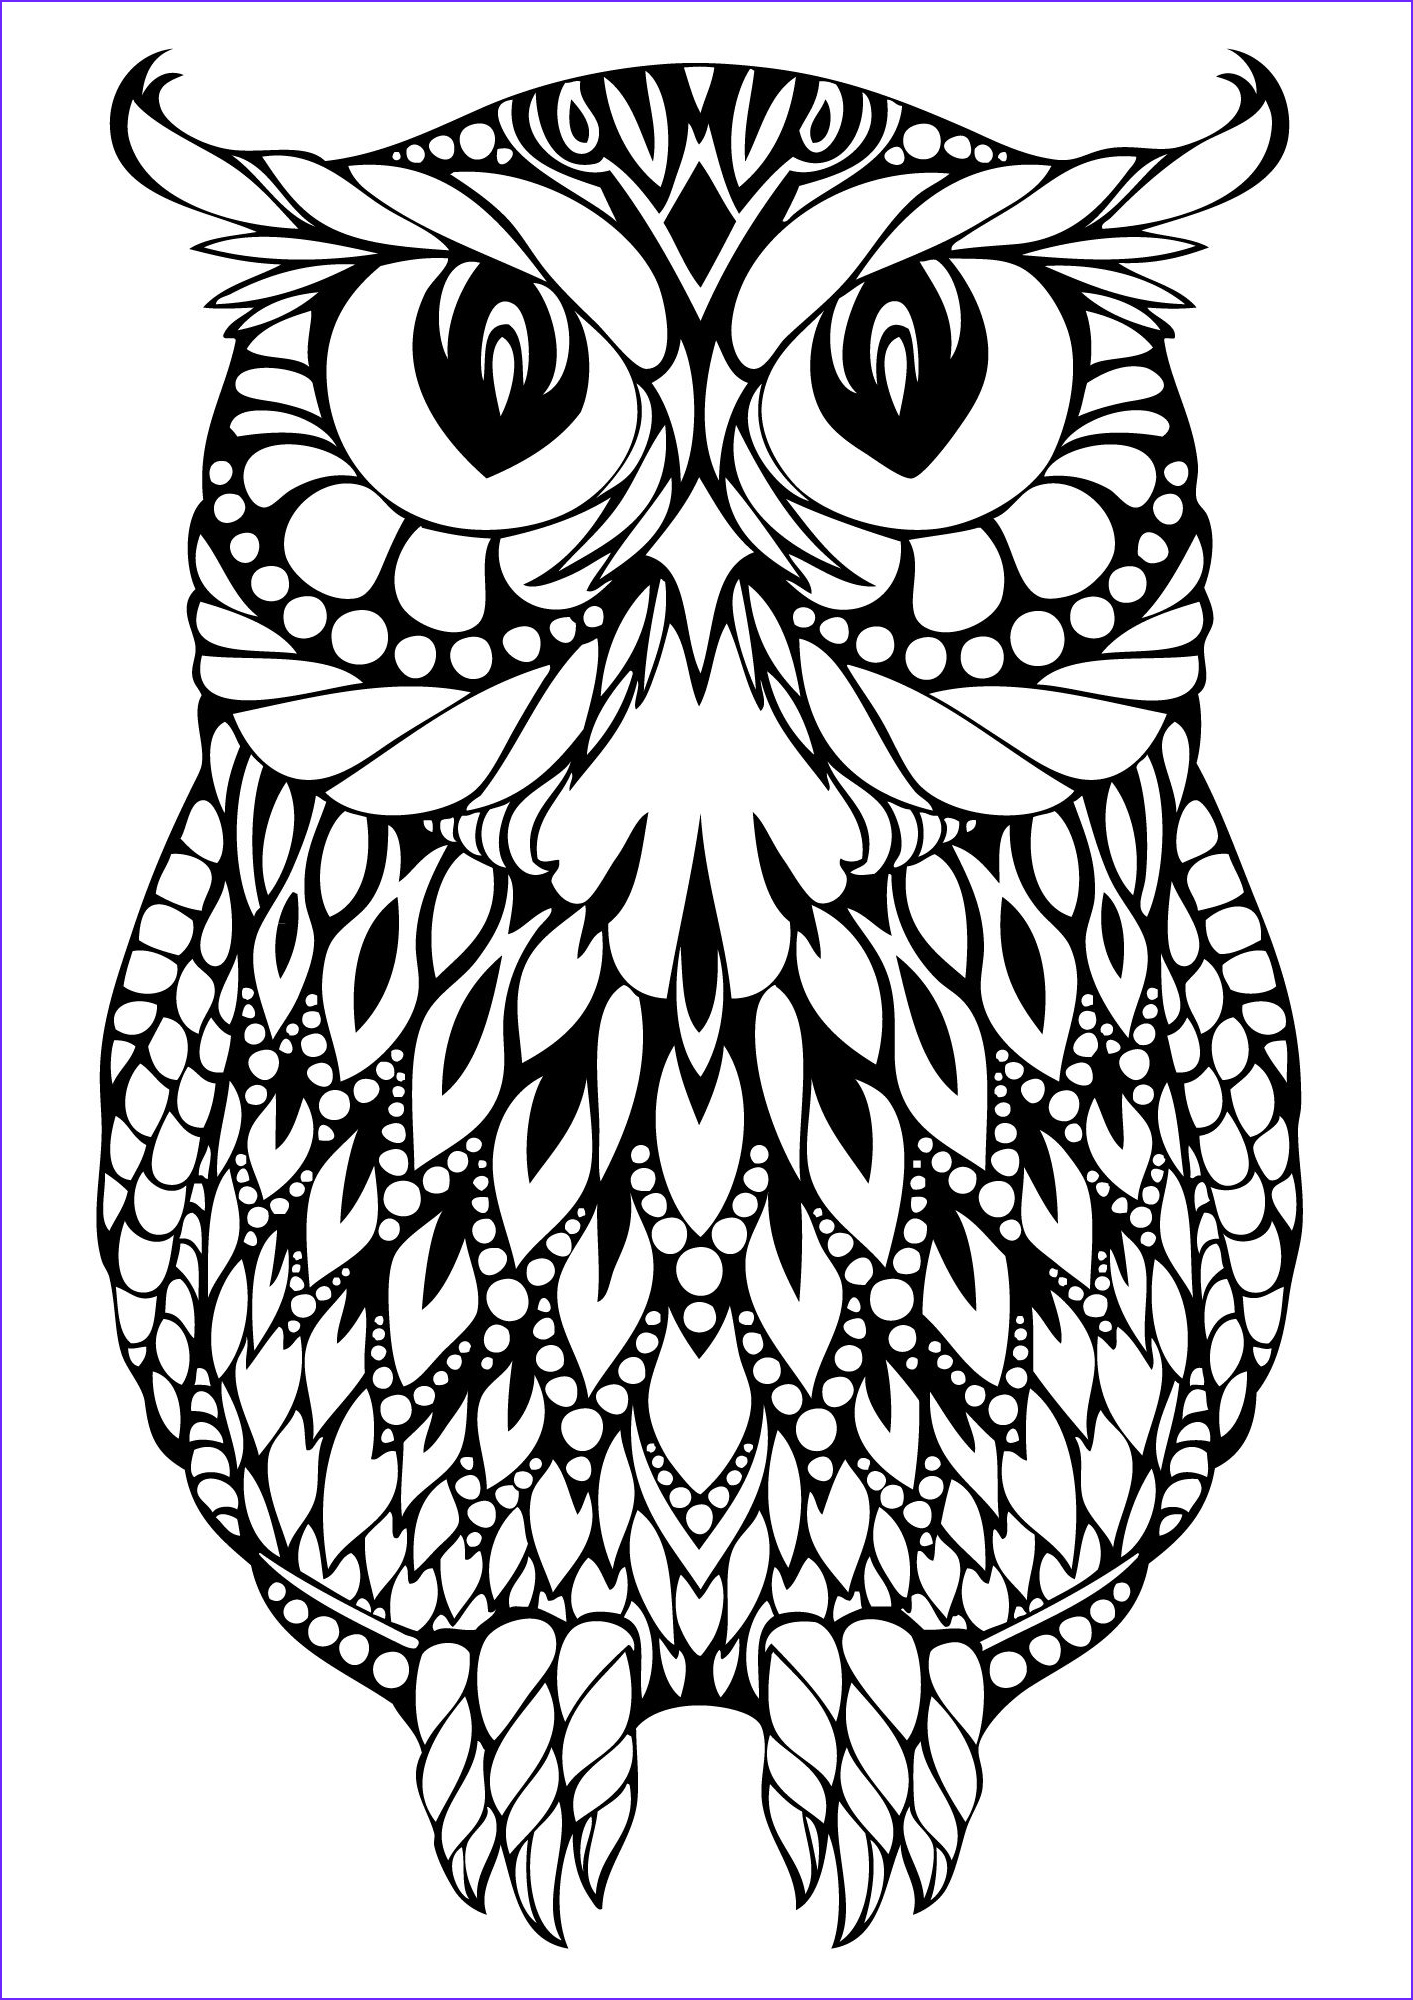 Adult Coloring Page Owls Cool Images Owl Coloring Pages Adult Coloring Pages Coloring